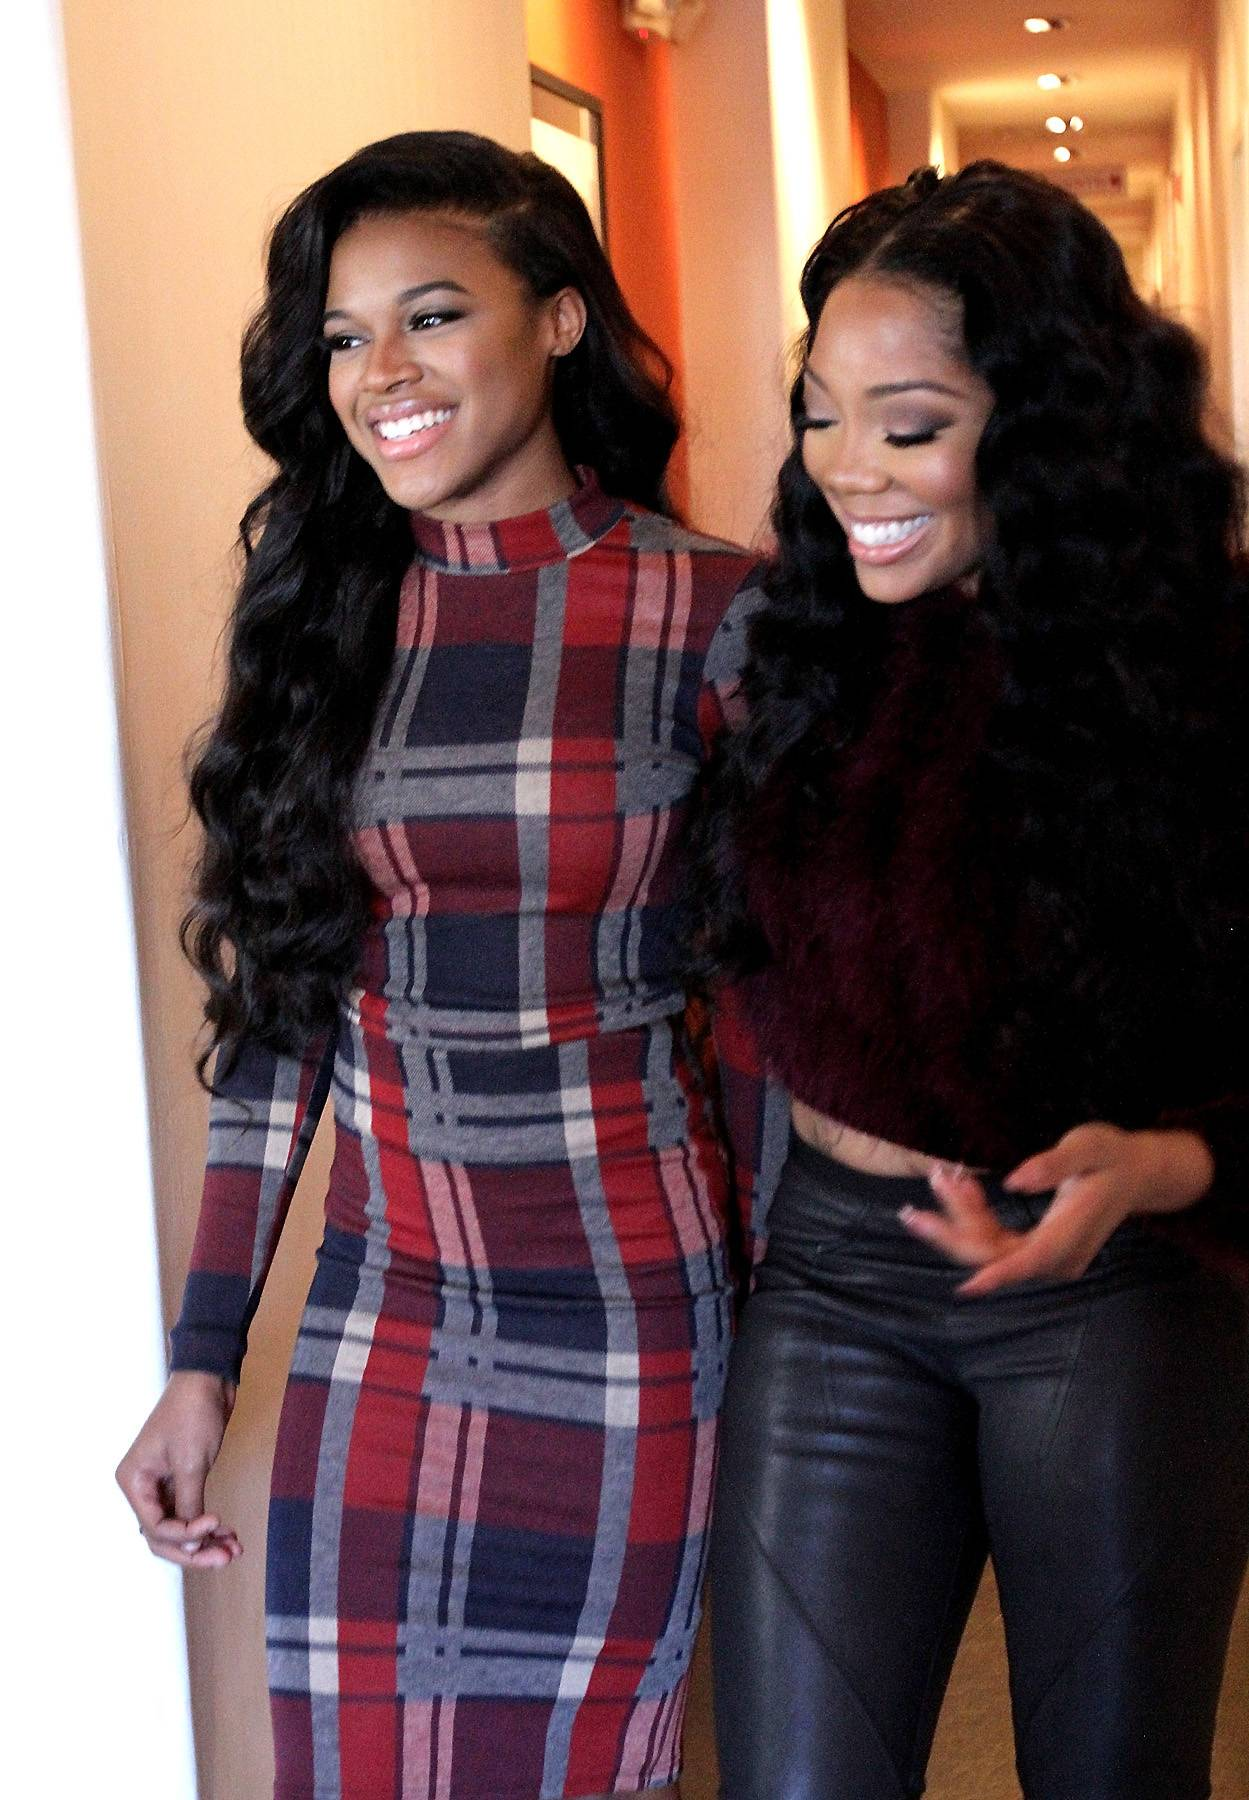 Sister-Cousin Chronicles (Part Deux) - Who knows what Nana and Stink are laughing about, but they must be up to something. (Photo by Maury Phillips/WireImage)